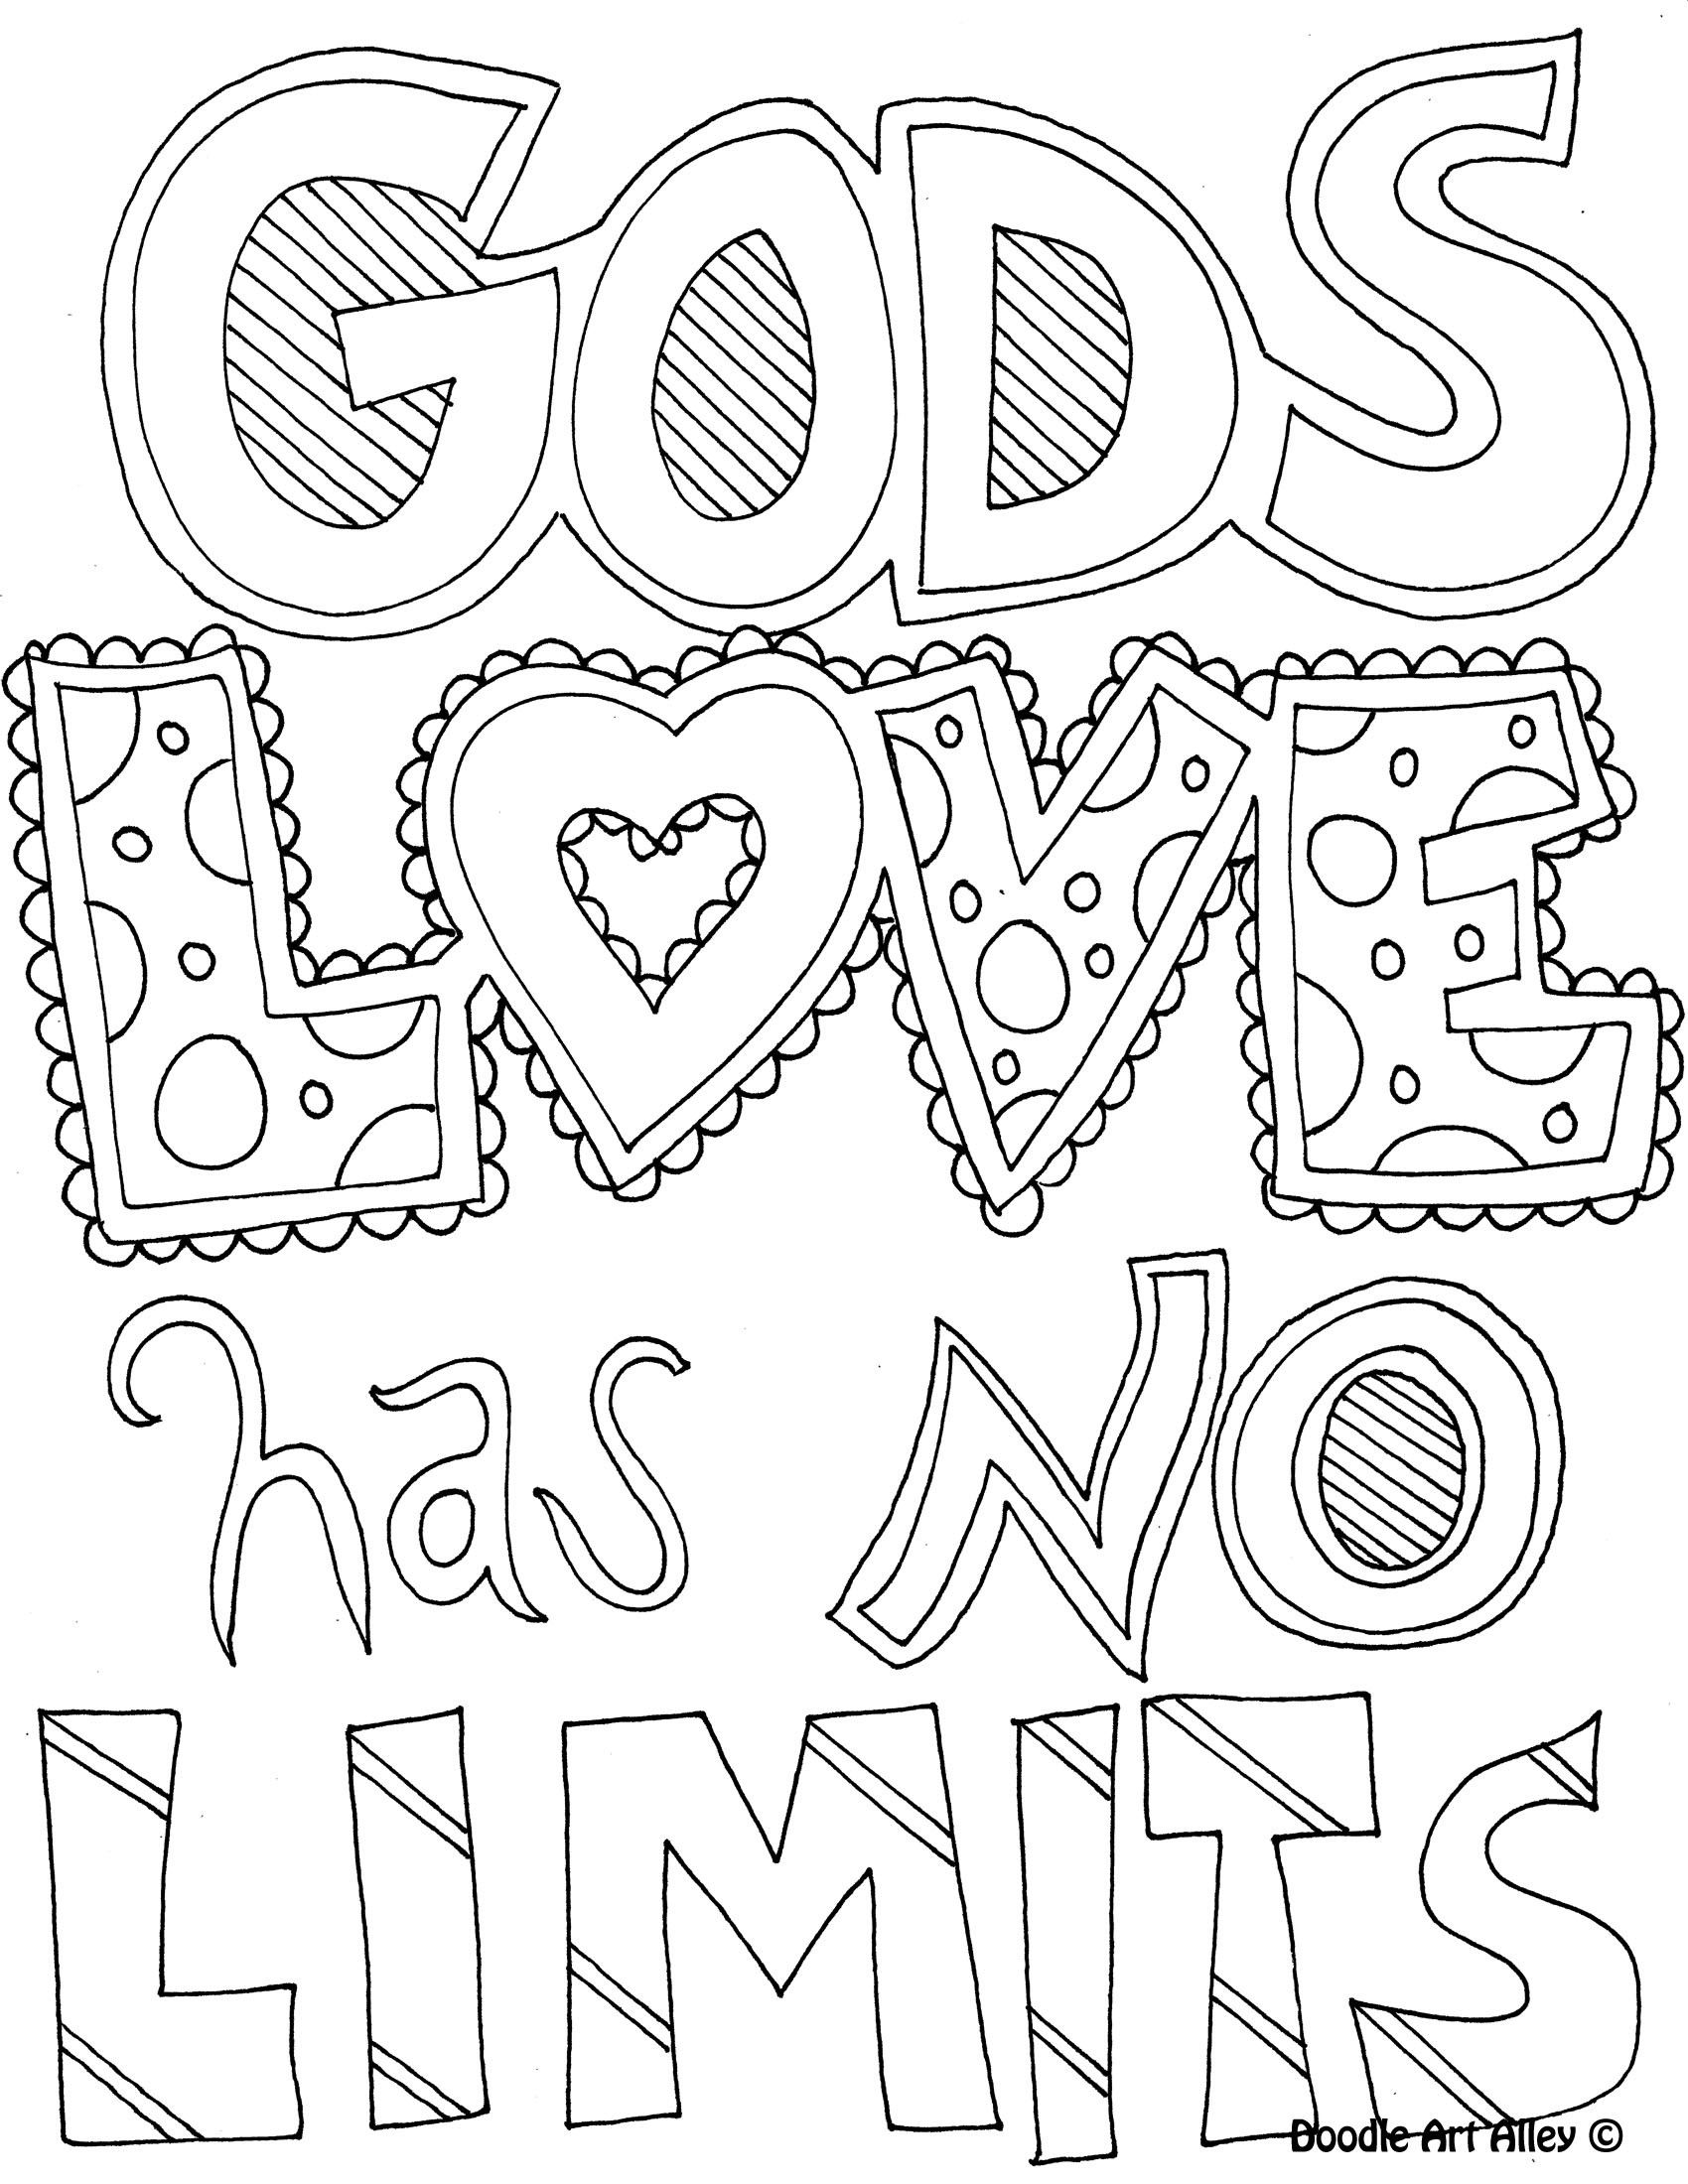 Godslove.jpg | coloring pages | Pinterest | Sunday school, Churches ...